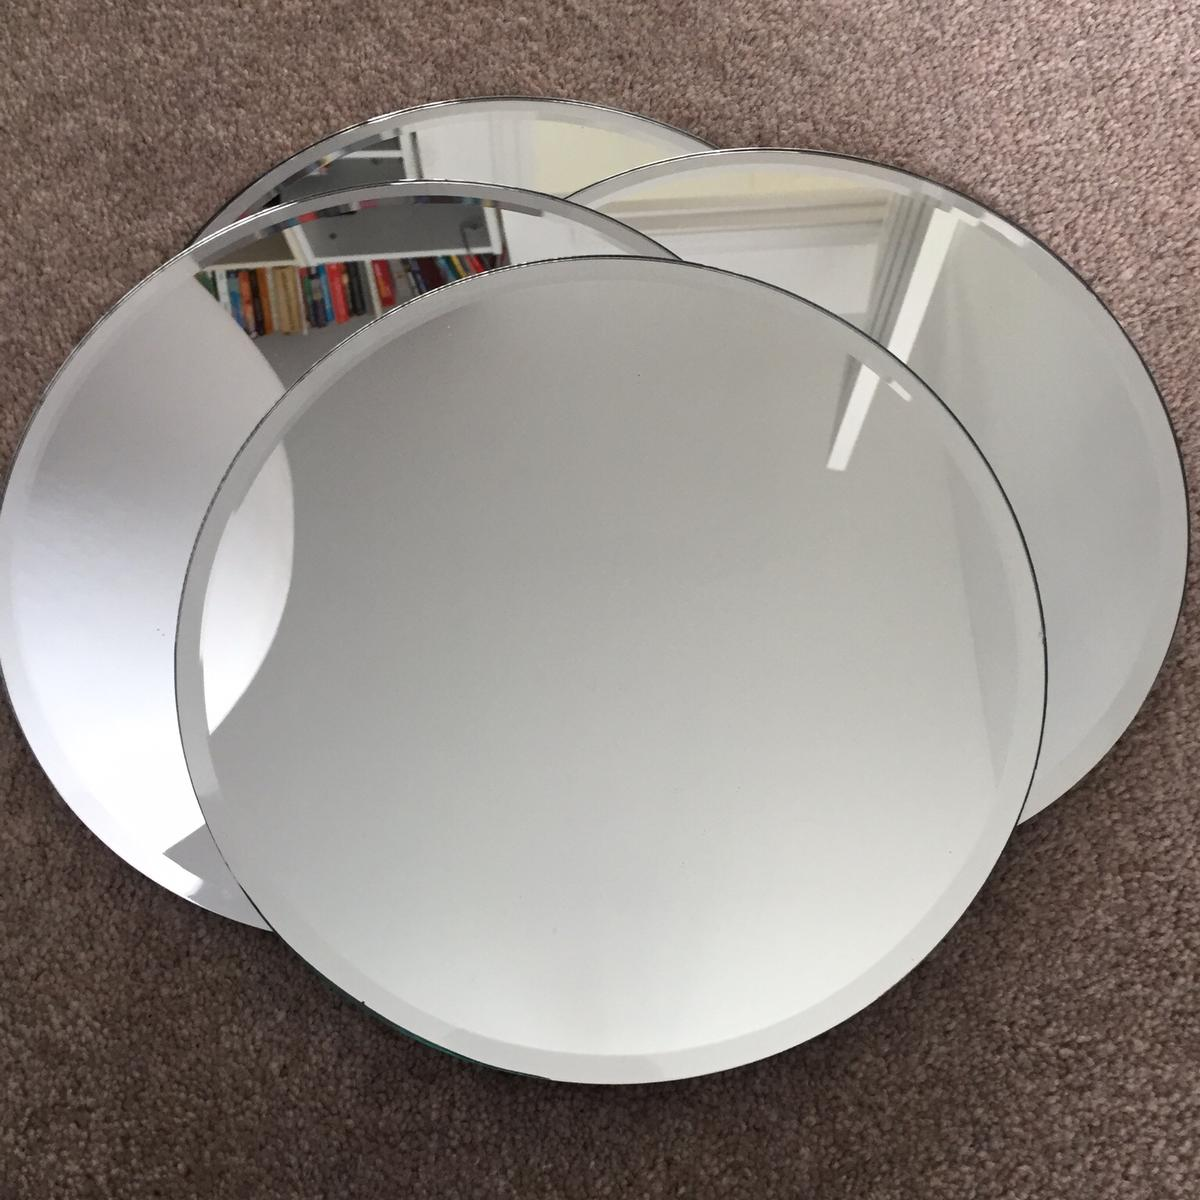 Wedding Decorations 4x Round Mirror